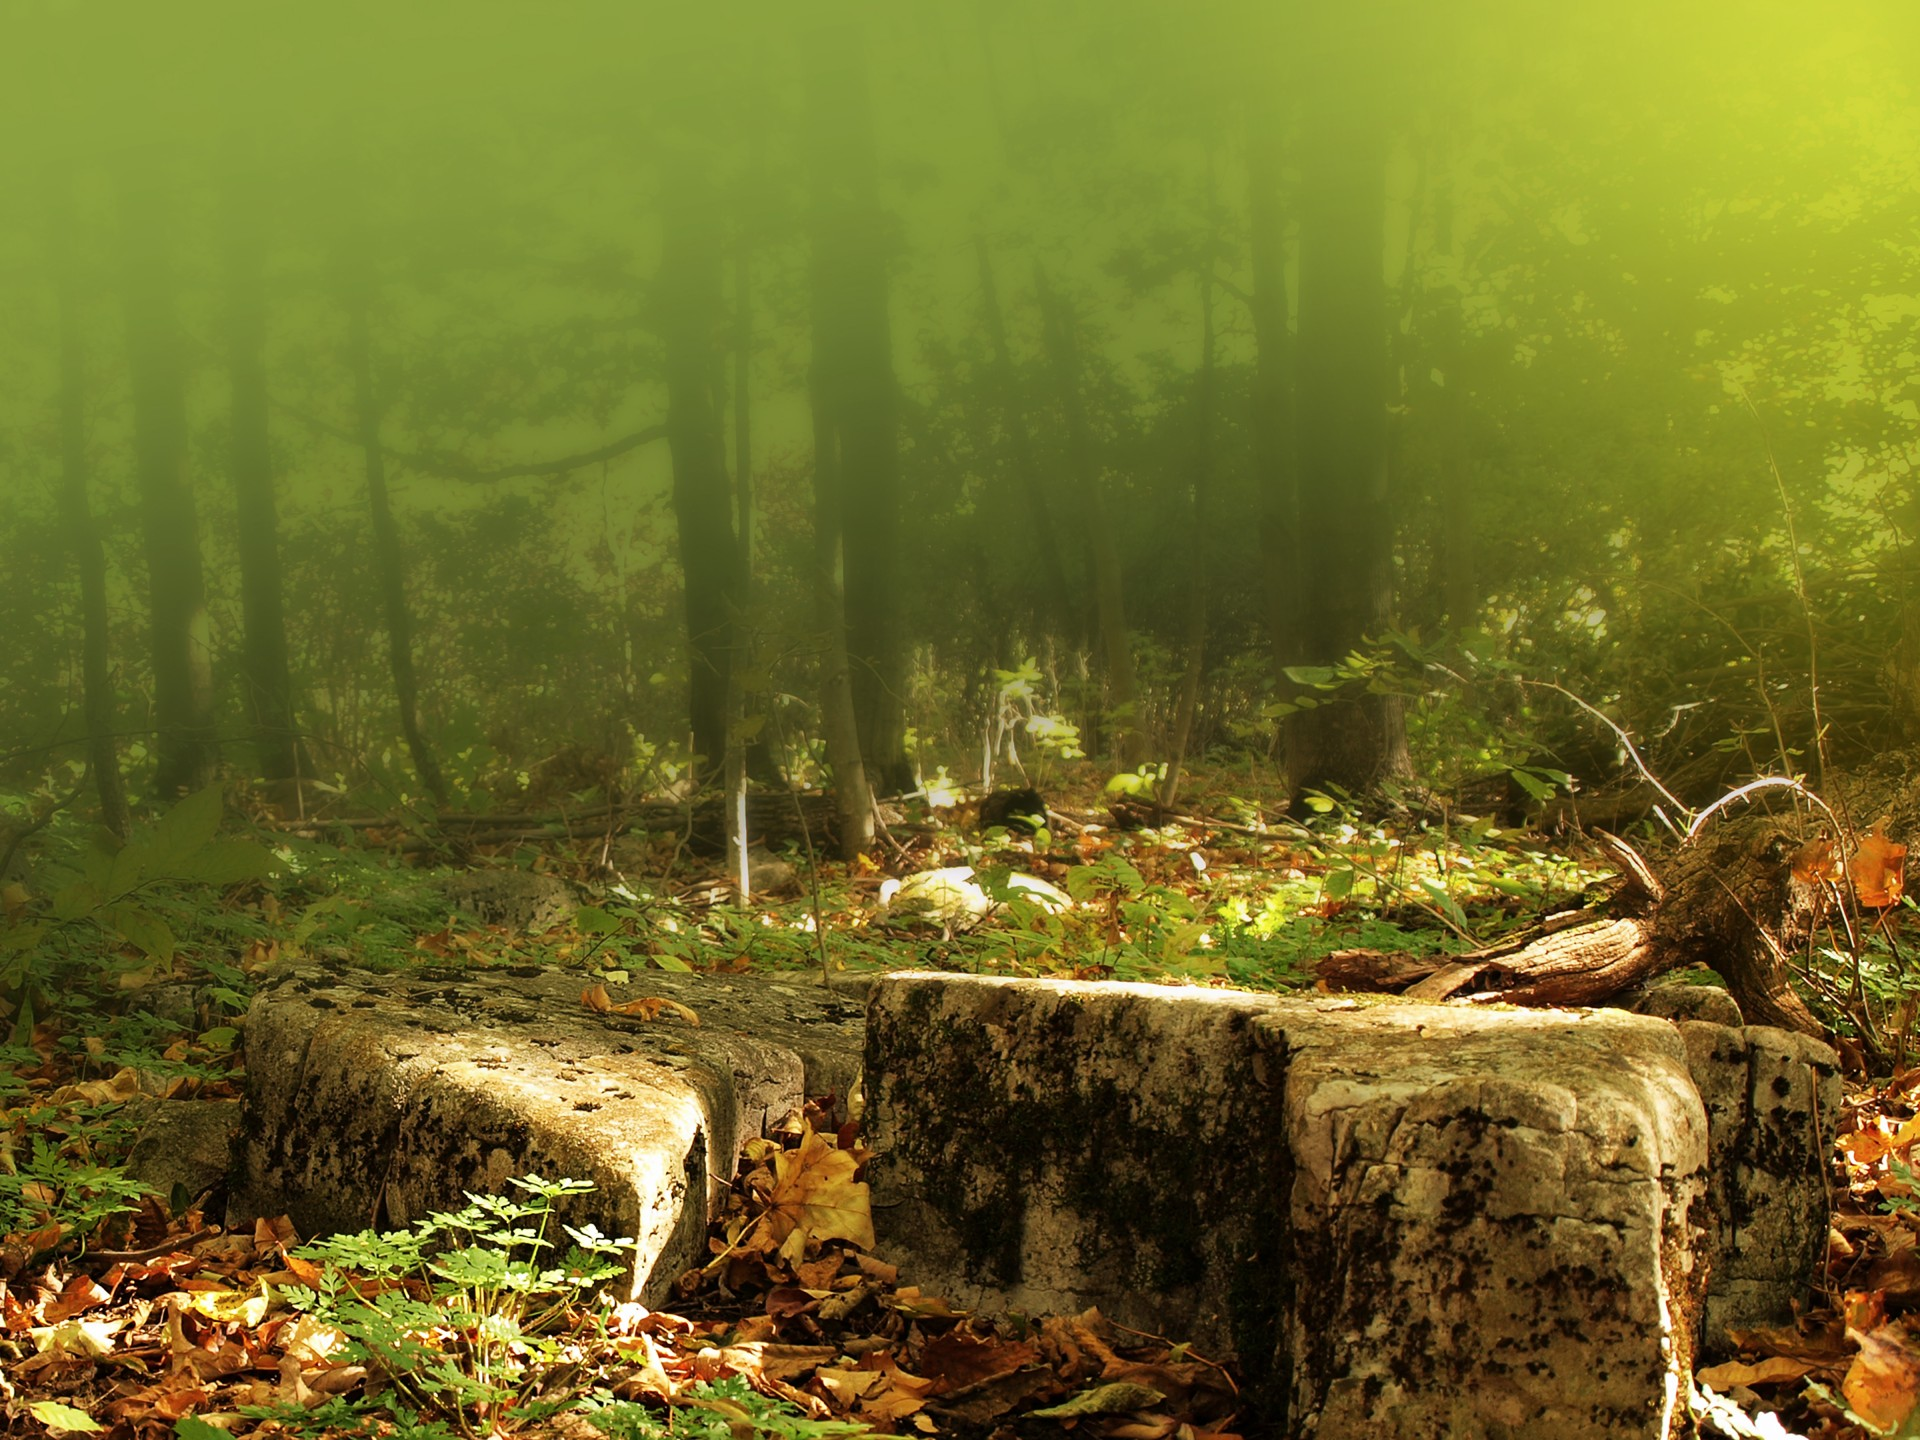 Leaves Wallpaper Fall Rocky Ground In Woods Free Stock Photo Public Domain